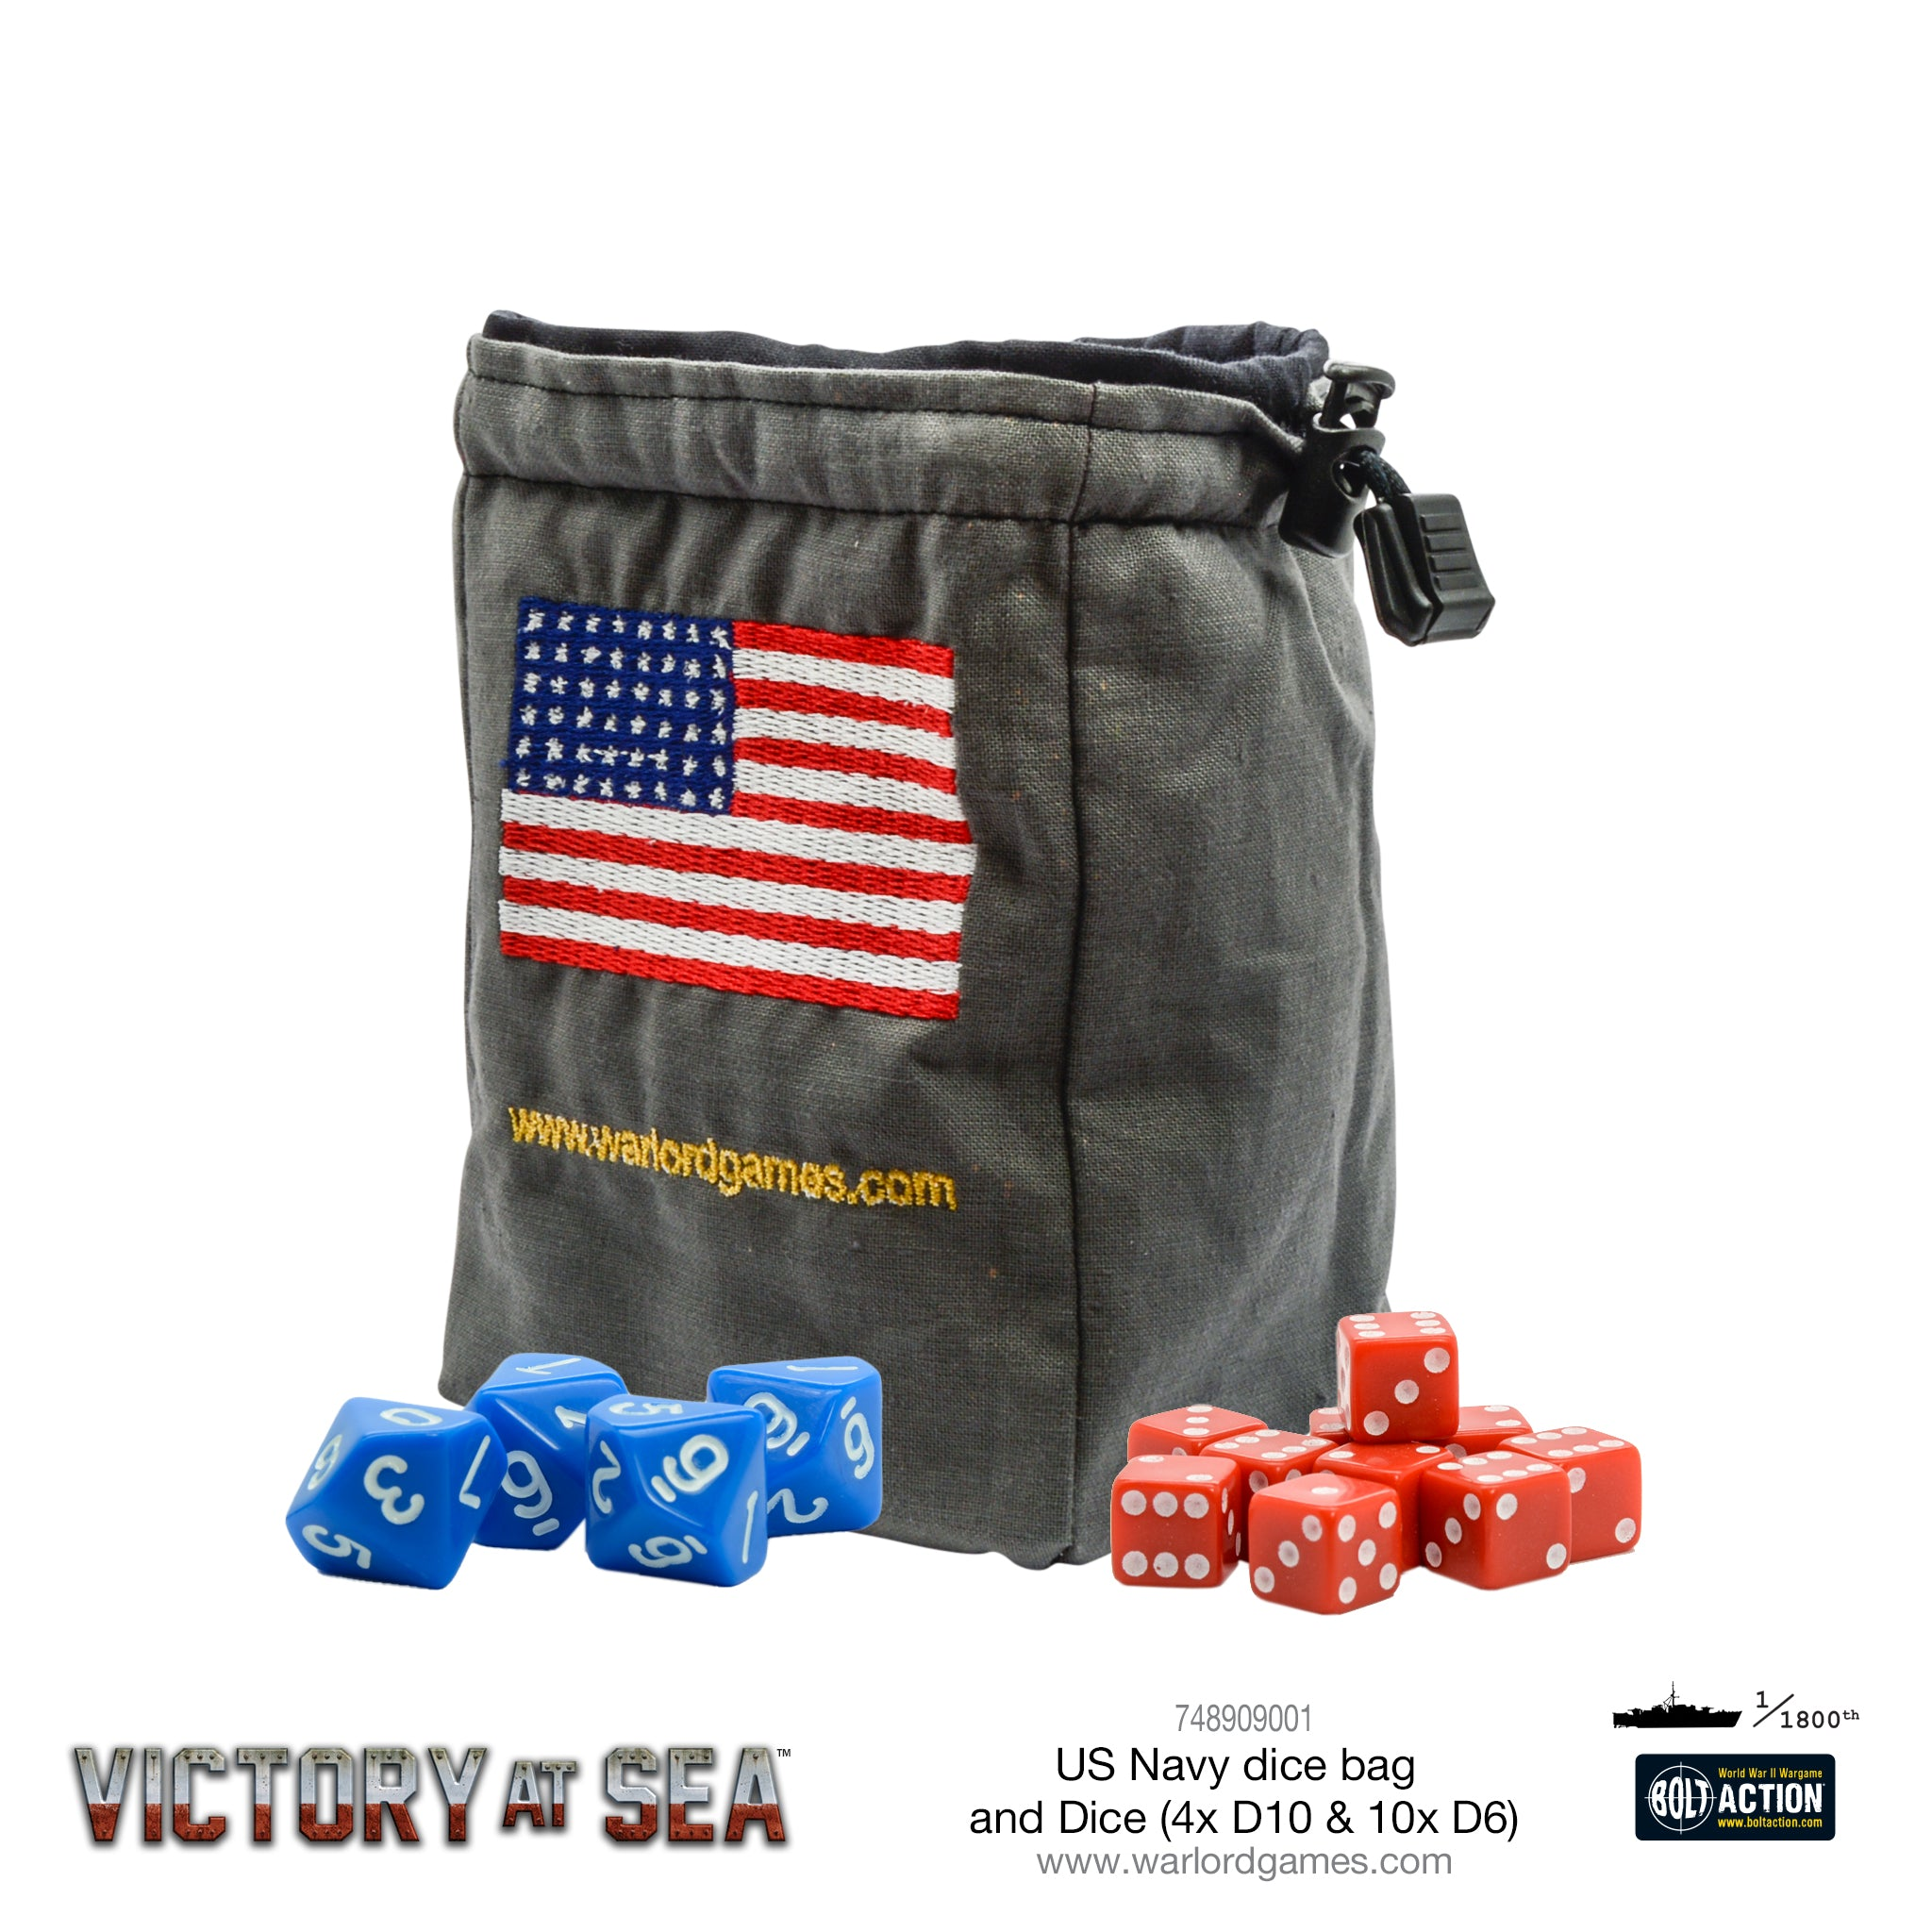 Victory at Sea - US Navy Dice and Dice bag